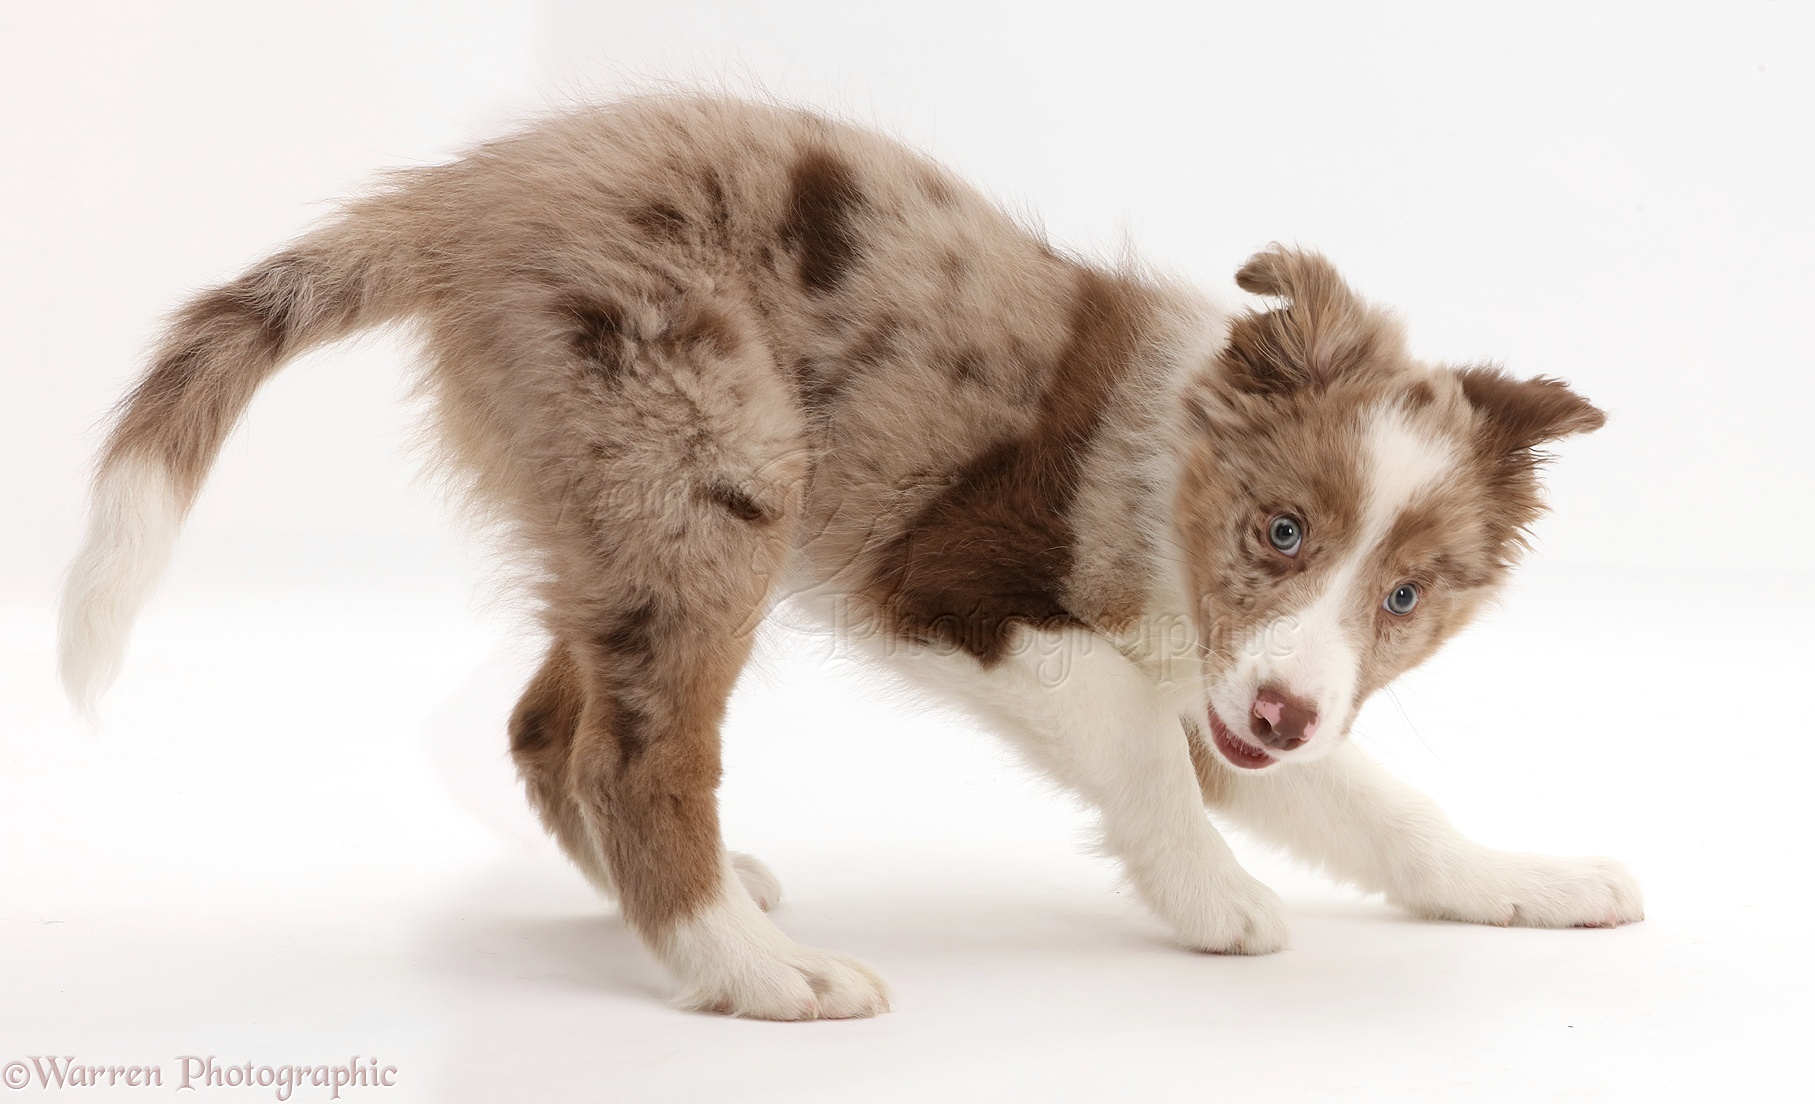 Dog Playful Red Merle Border Collie Puppy Photo Wp44158